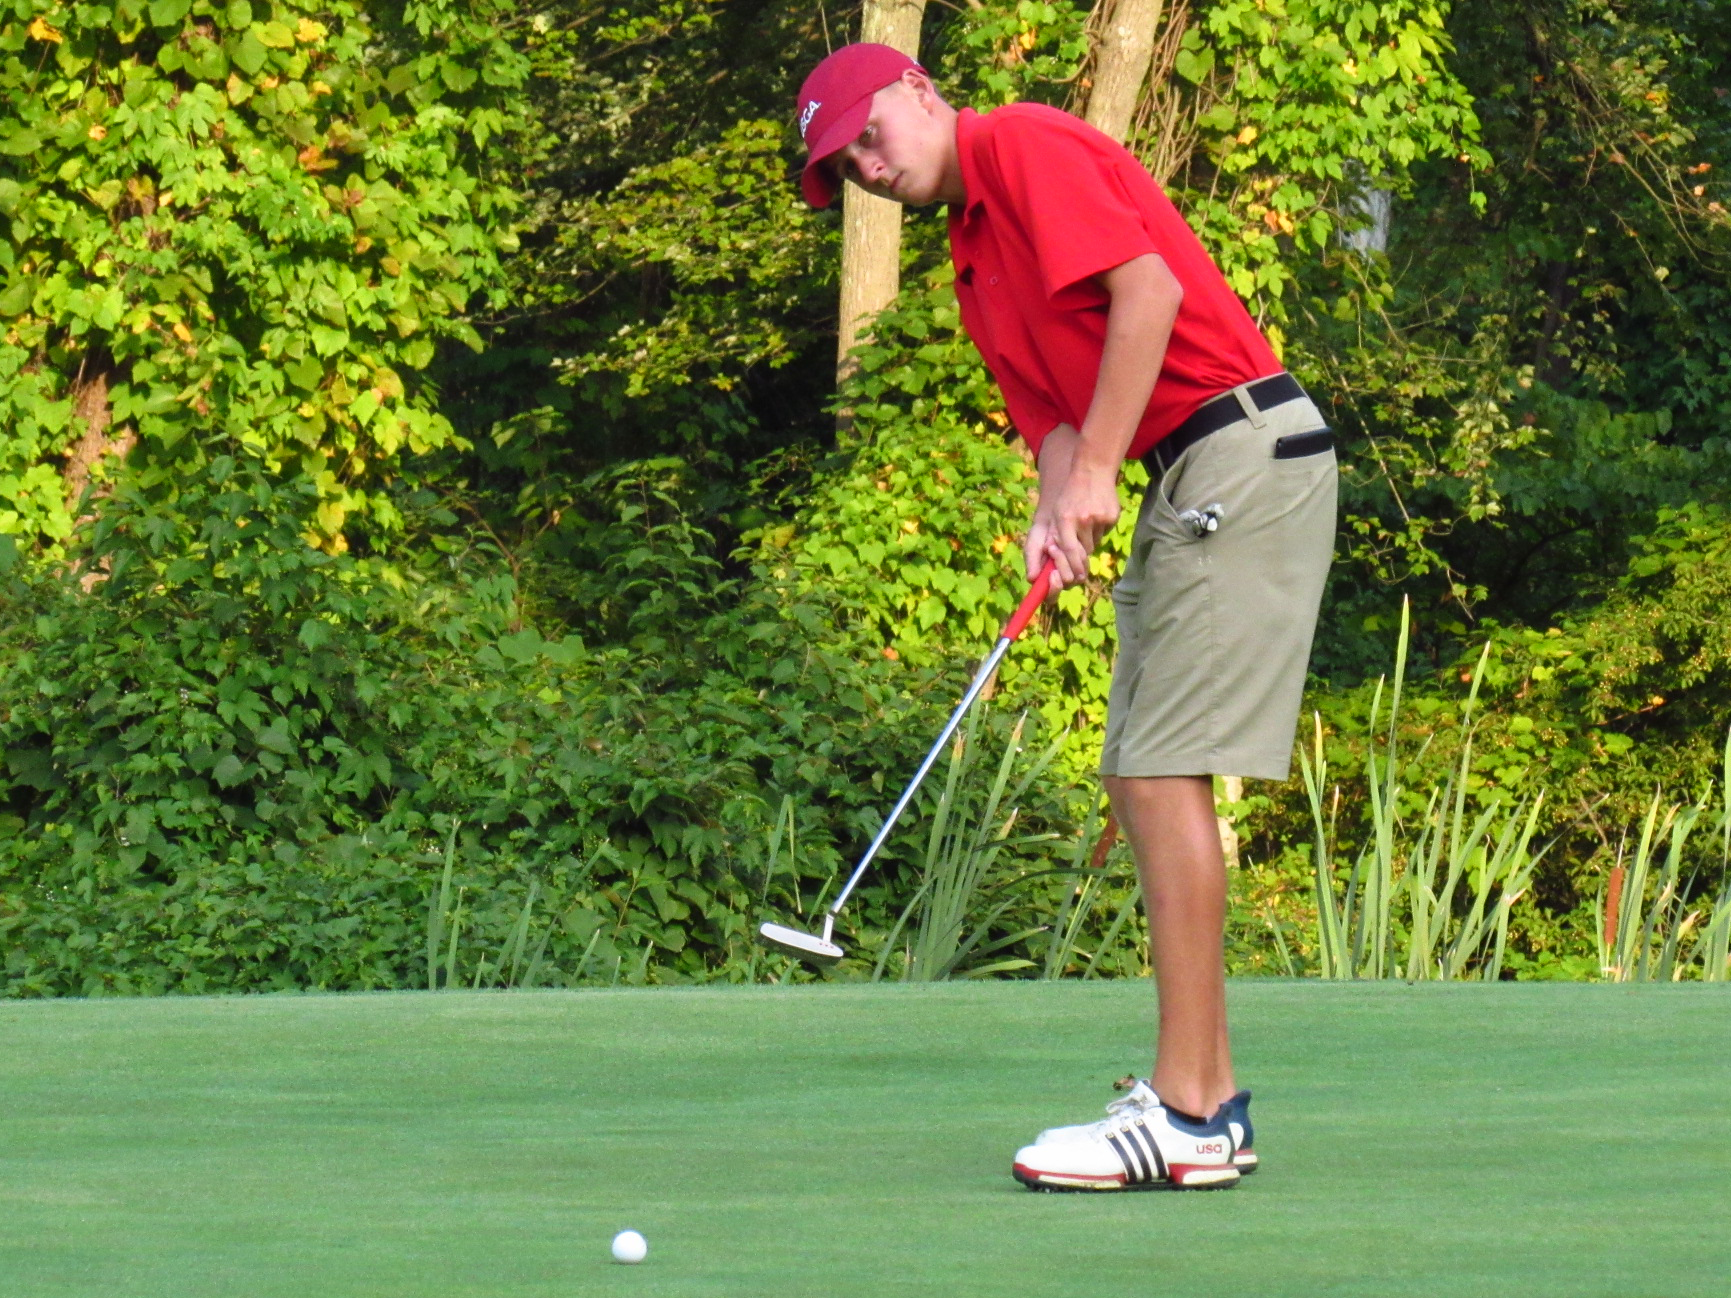 Golf: Patriots Place Fifth at Inter-Ac League Invitational, Schnur on to Individual Championships